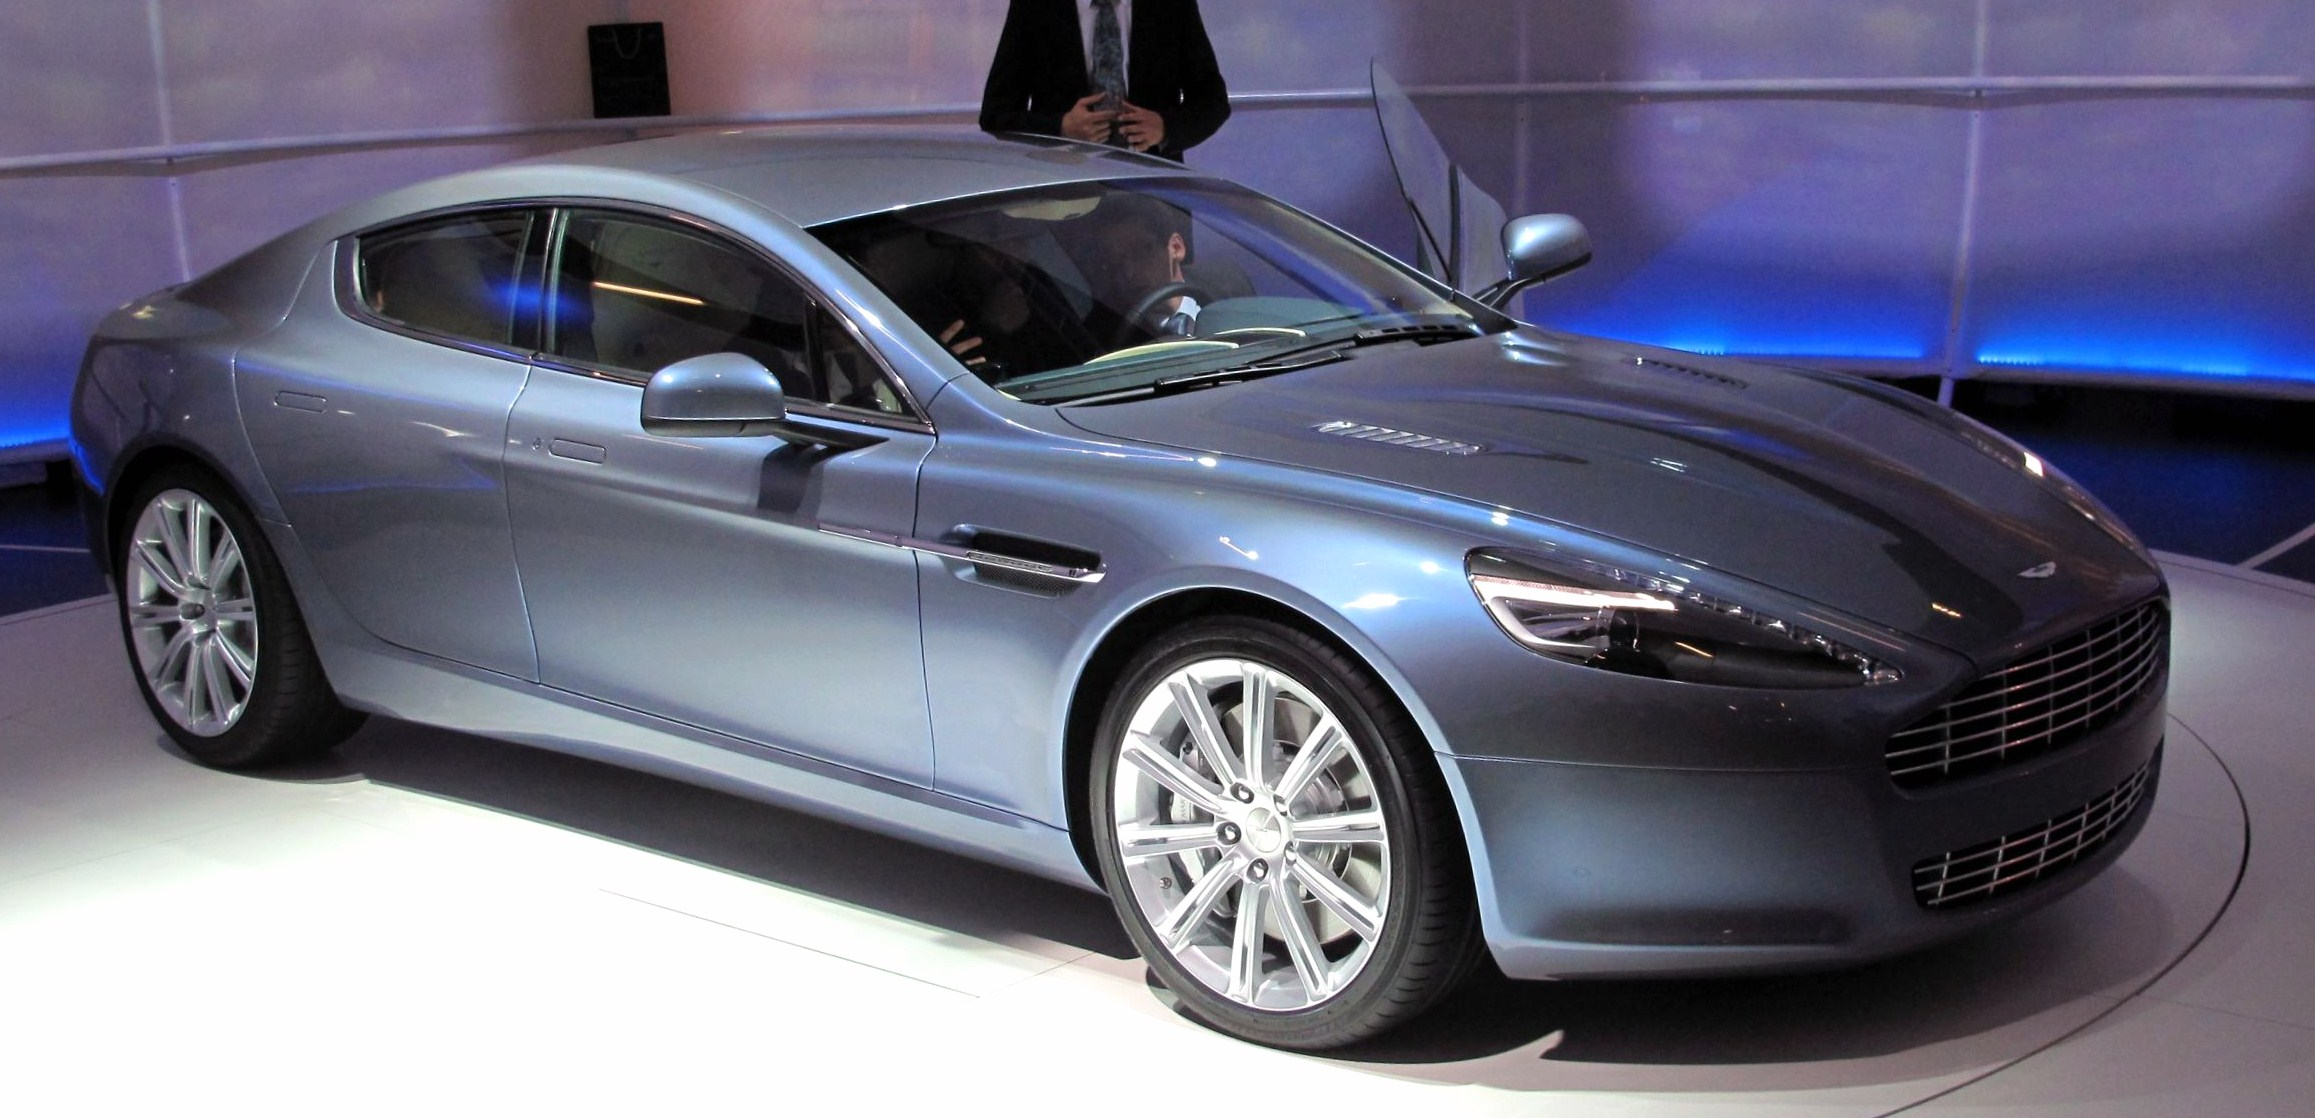 aston martin rapide images #9